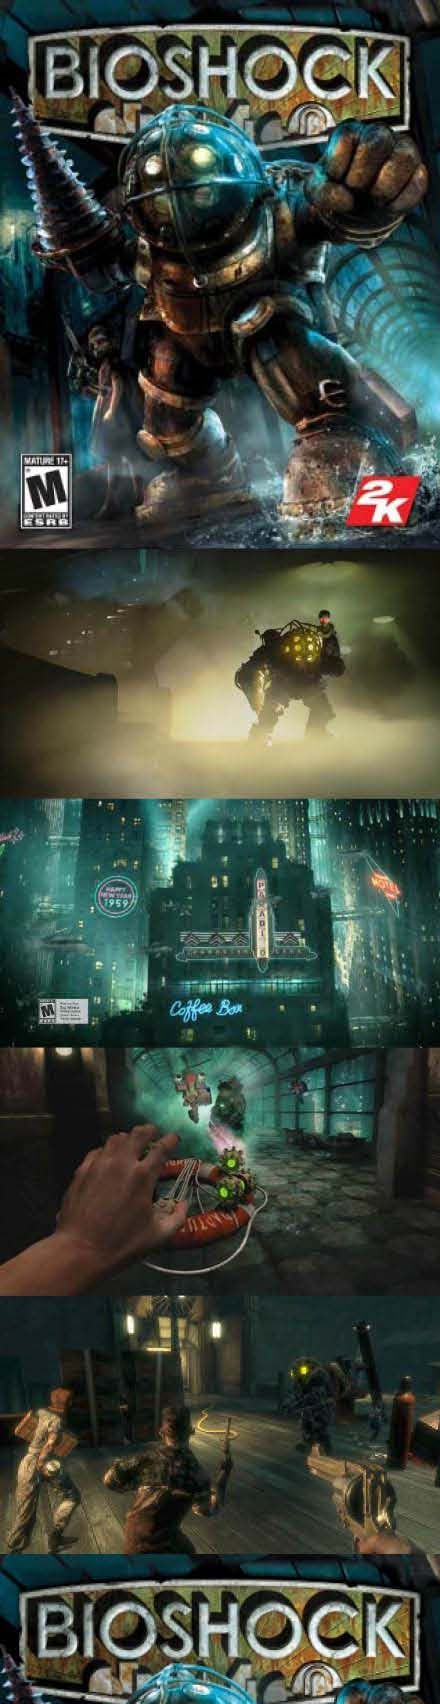 #BioShock is one of the best #SurvivalHorror games we have ever played! http://www.levelgamingground.com/bioshock-review.html